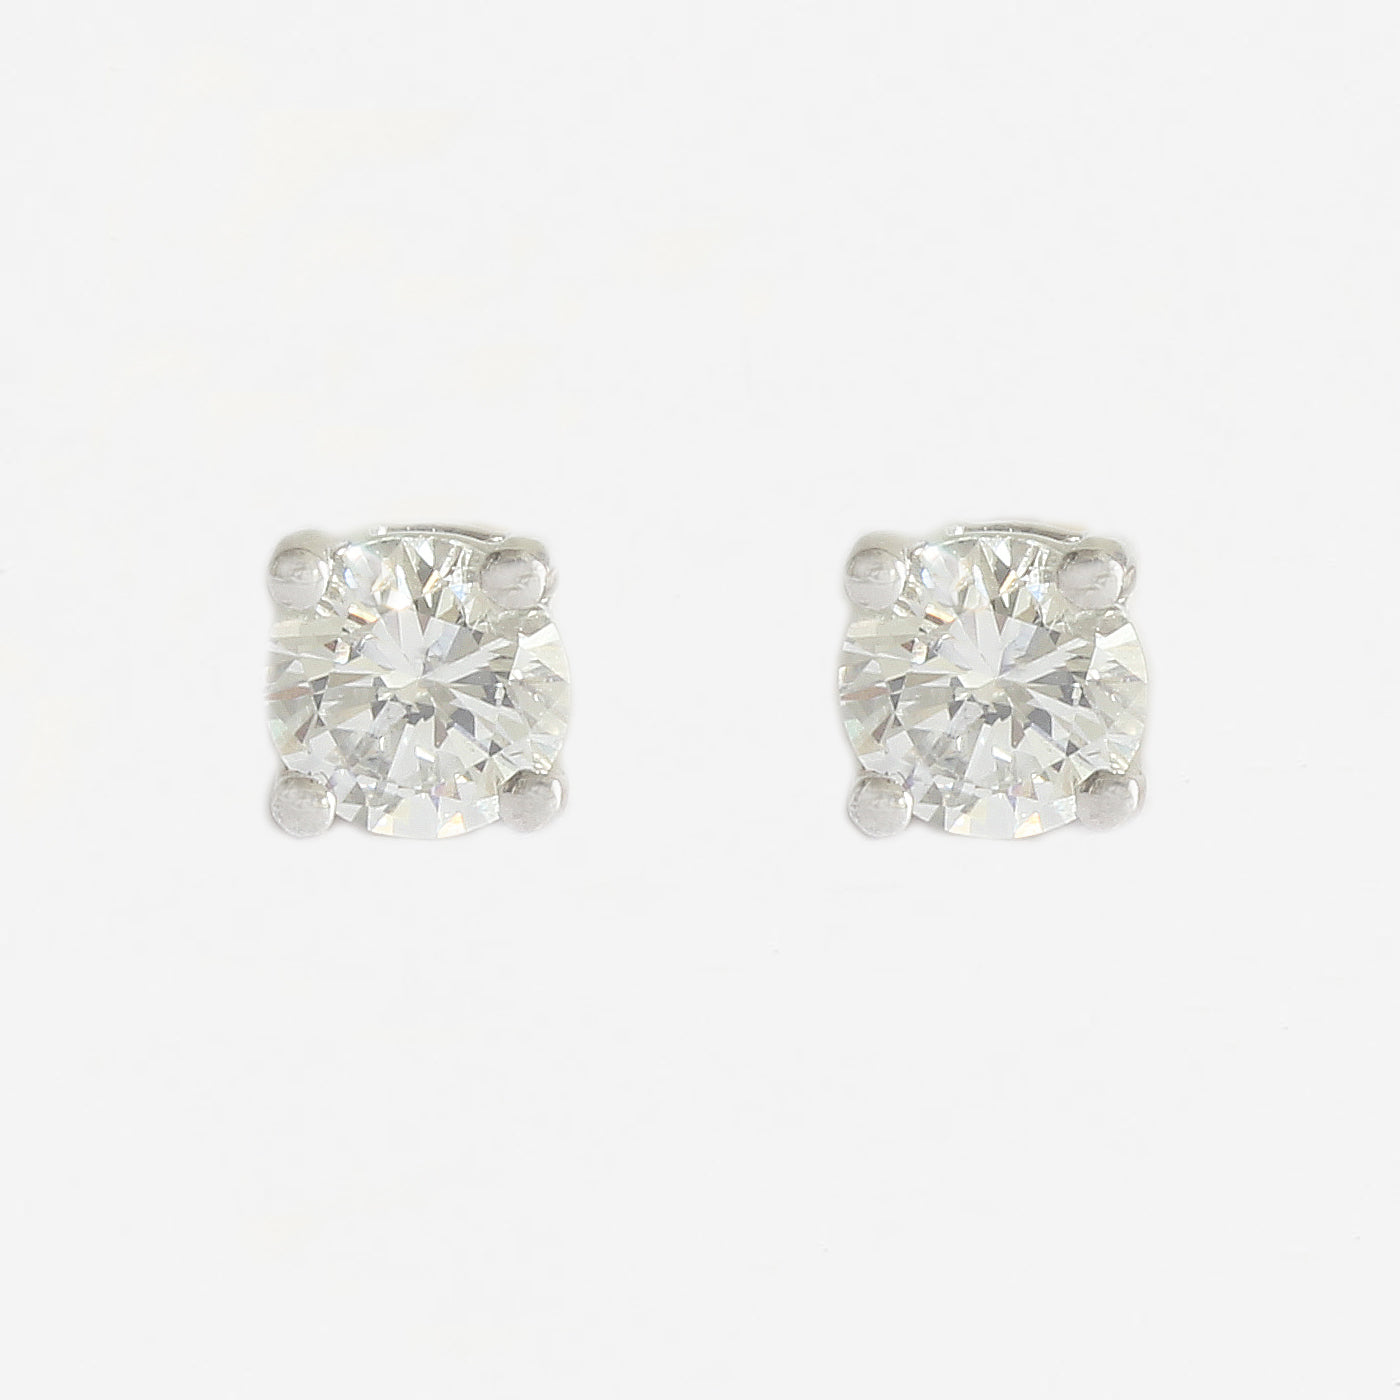 a four claw set of round diamond stud earrings in white and yellow gold